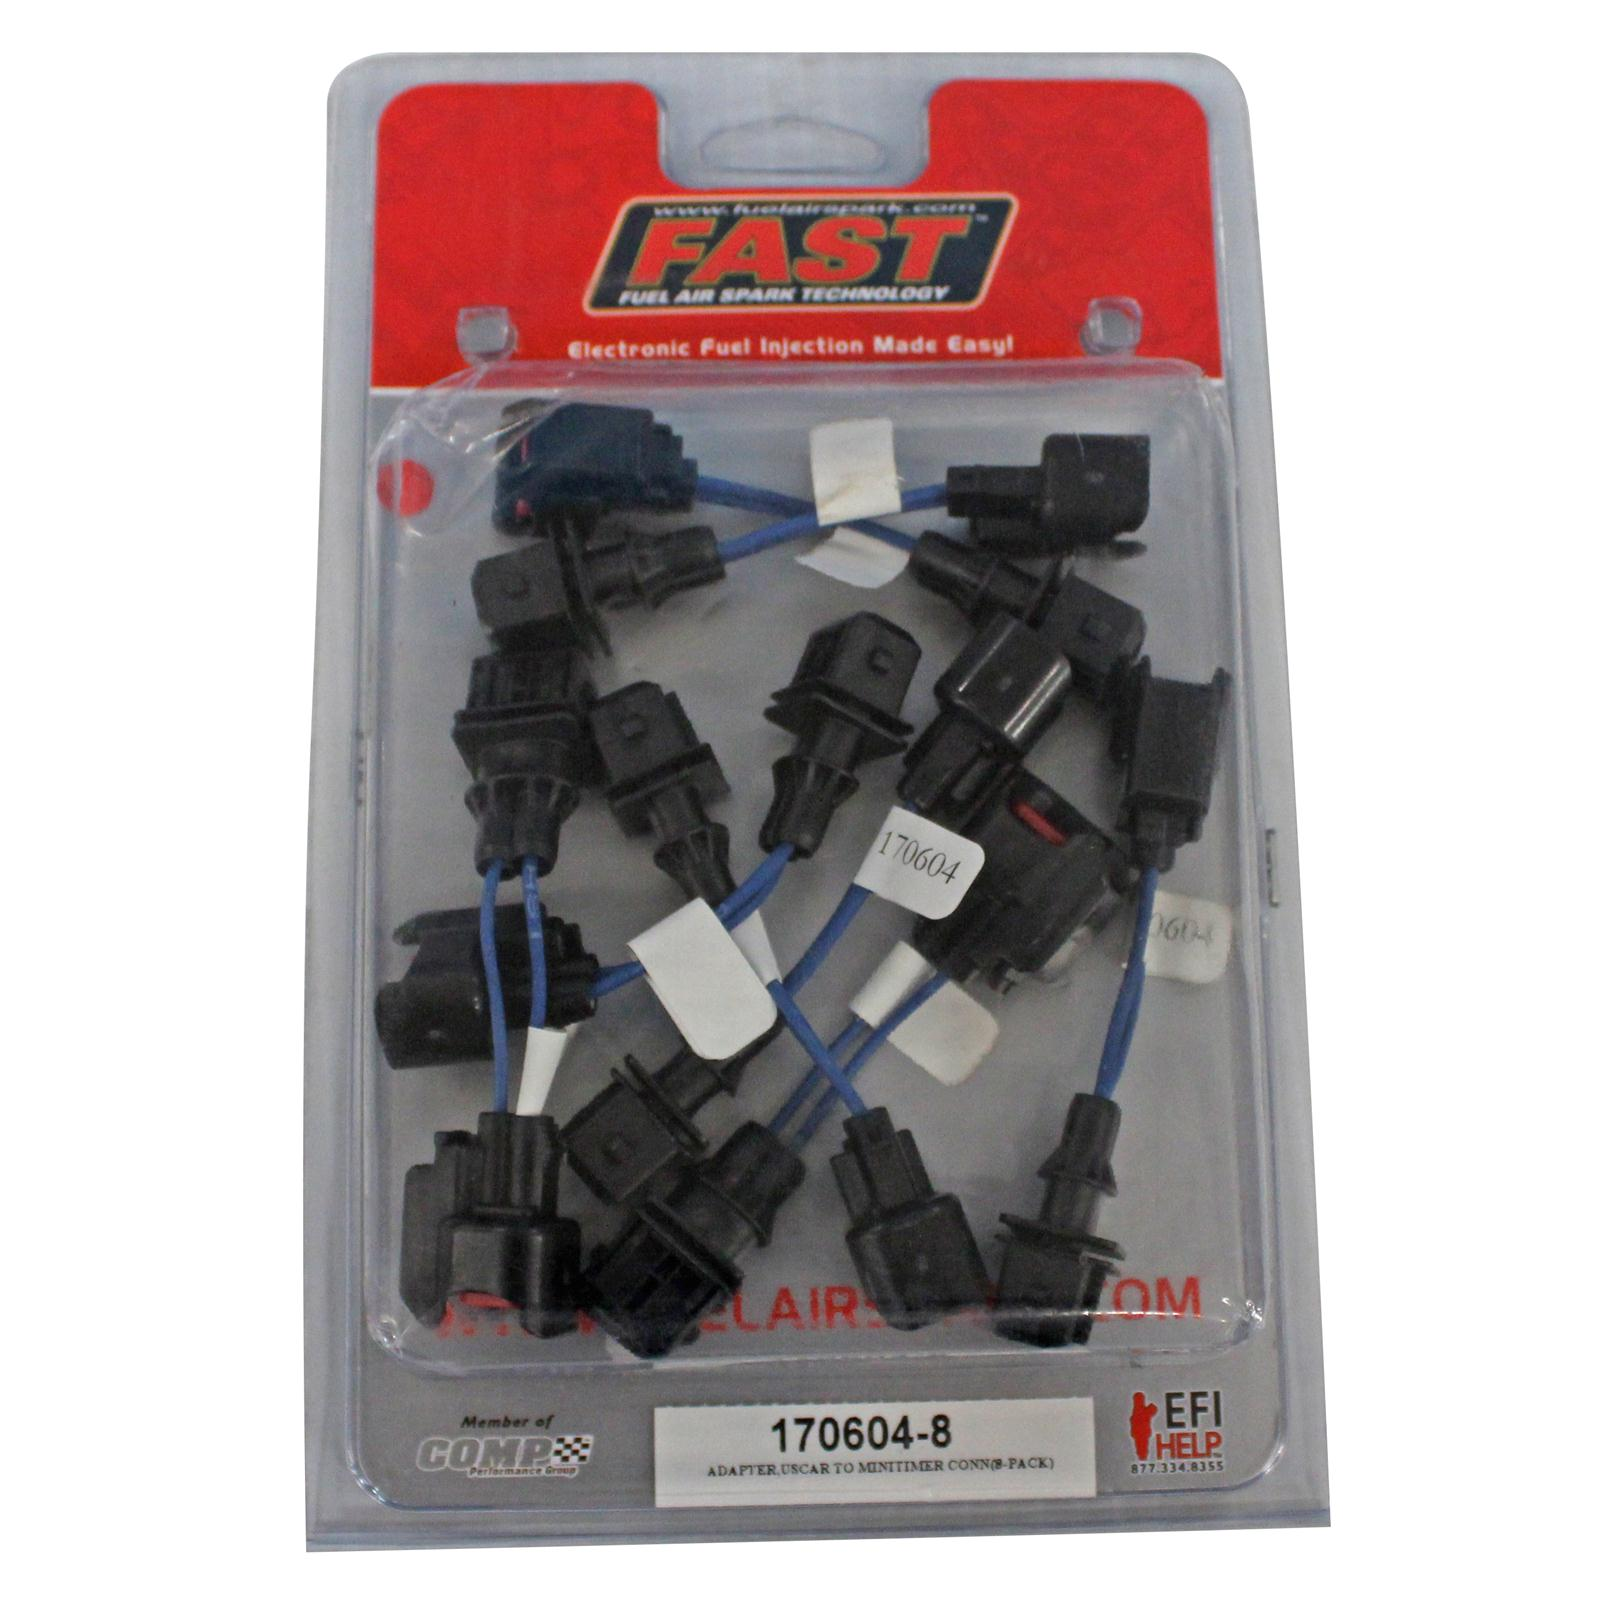 FAST Fuel Injector Adapter Harness (EV6-EV1-8 Pack)